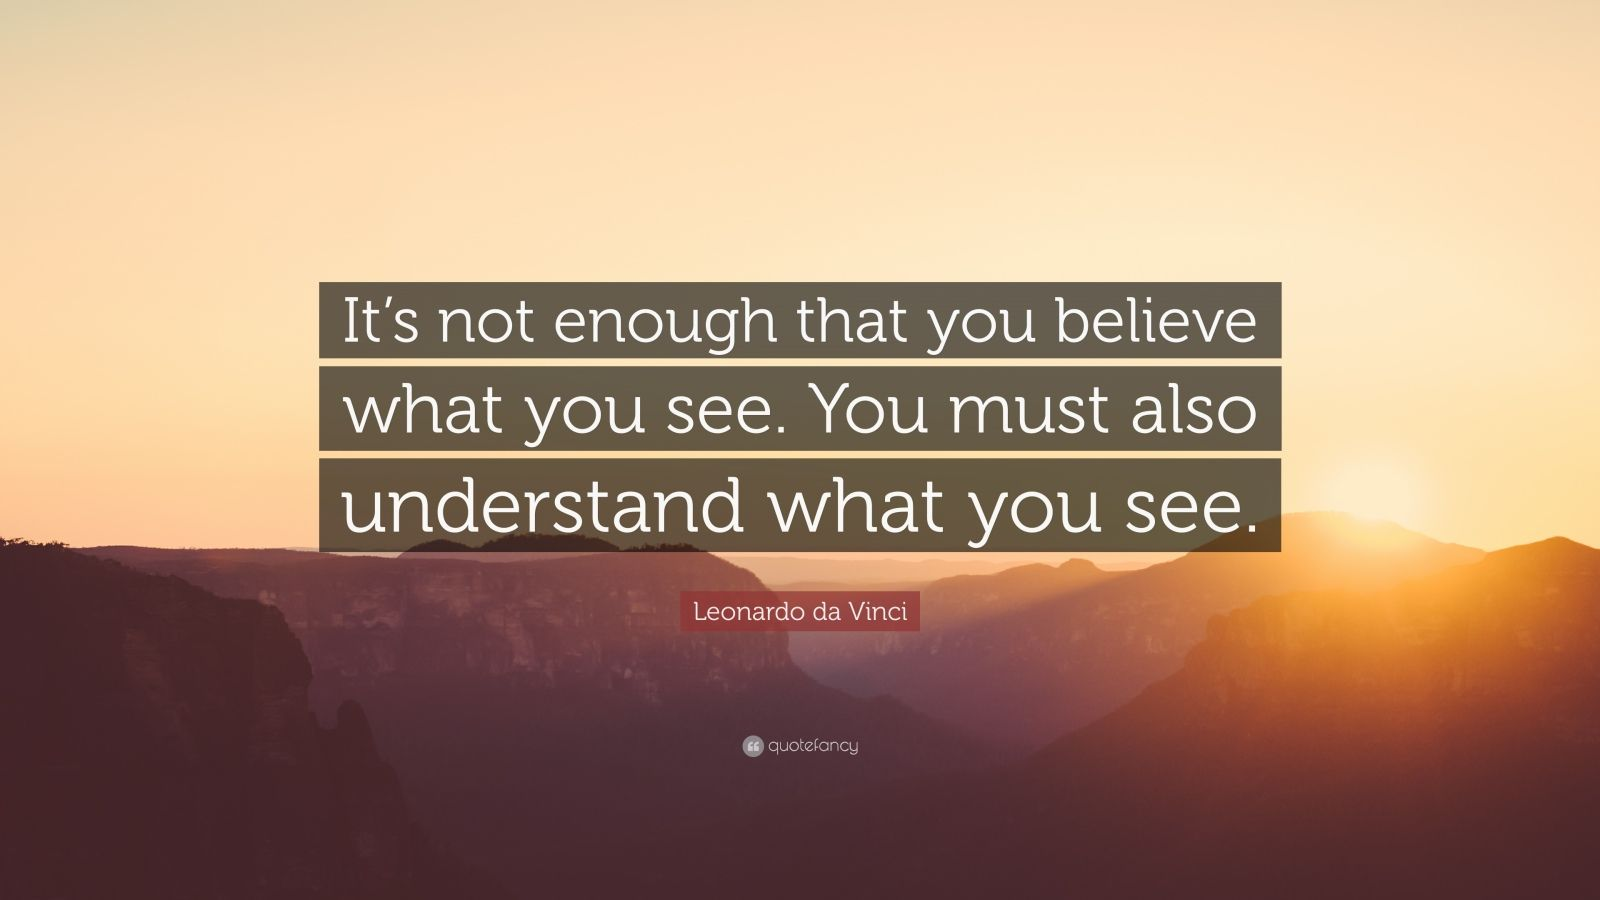 """Leonardo da Vinci Quote: """"It's not enough that you believe what you see. You must also understand what you see."""""""